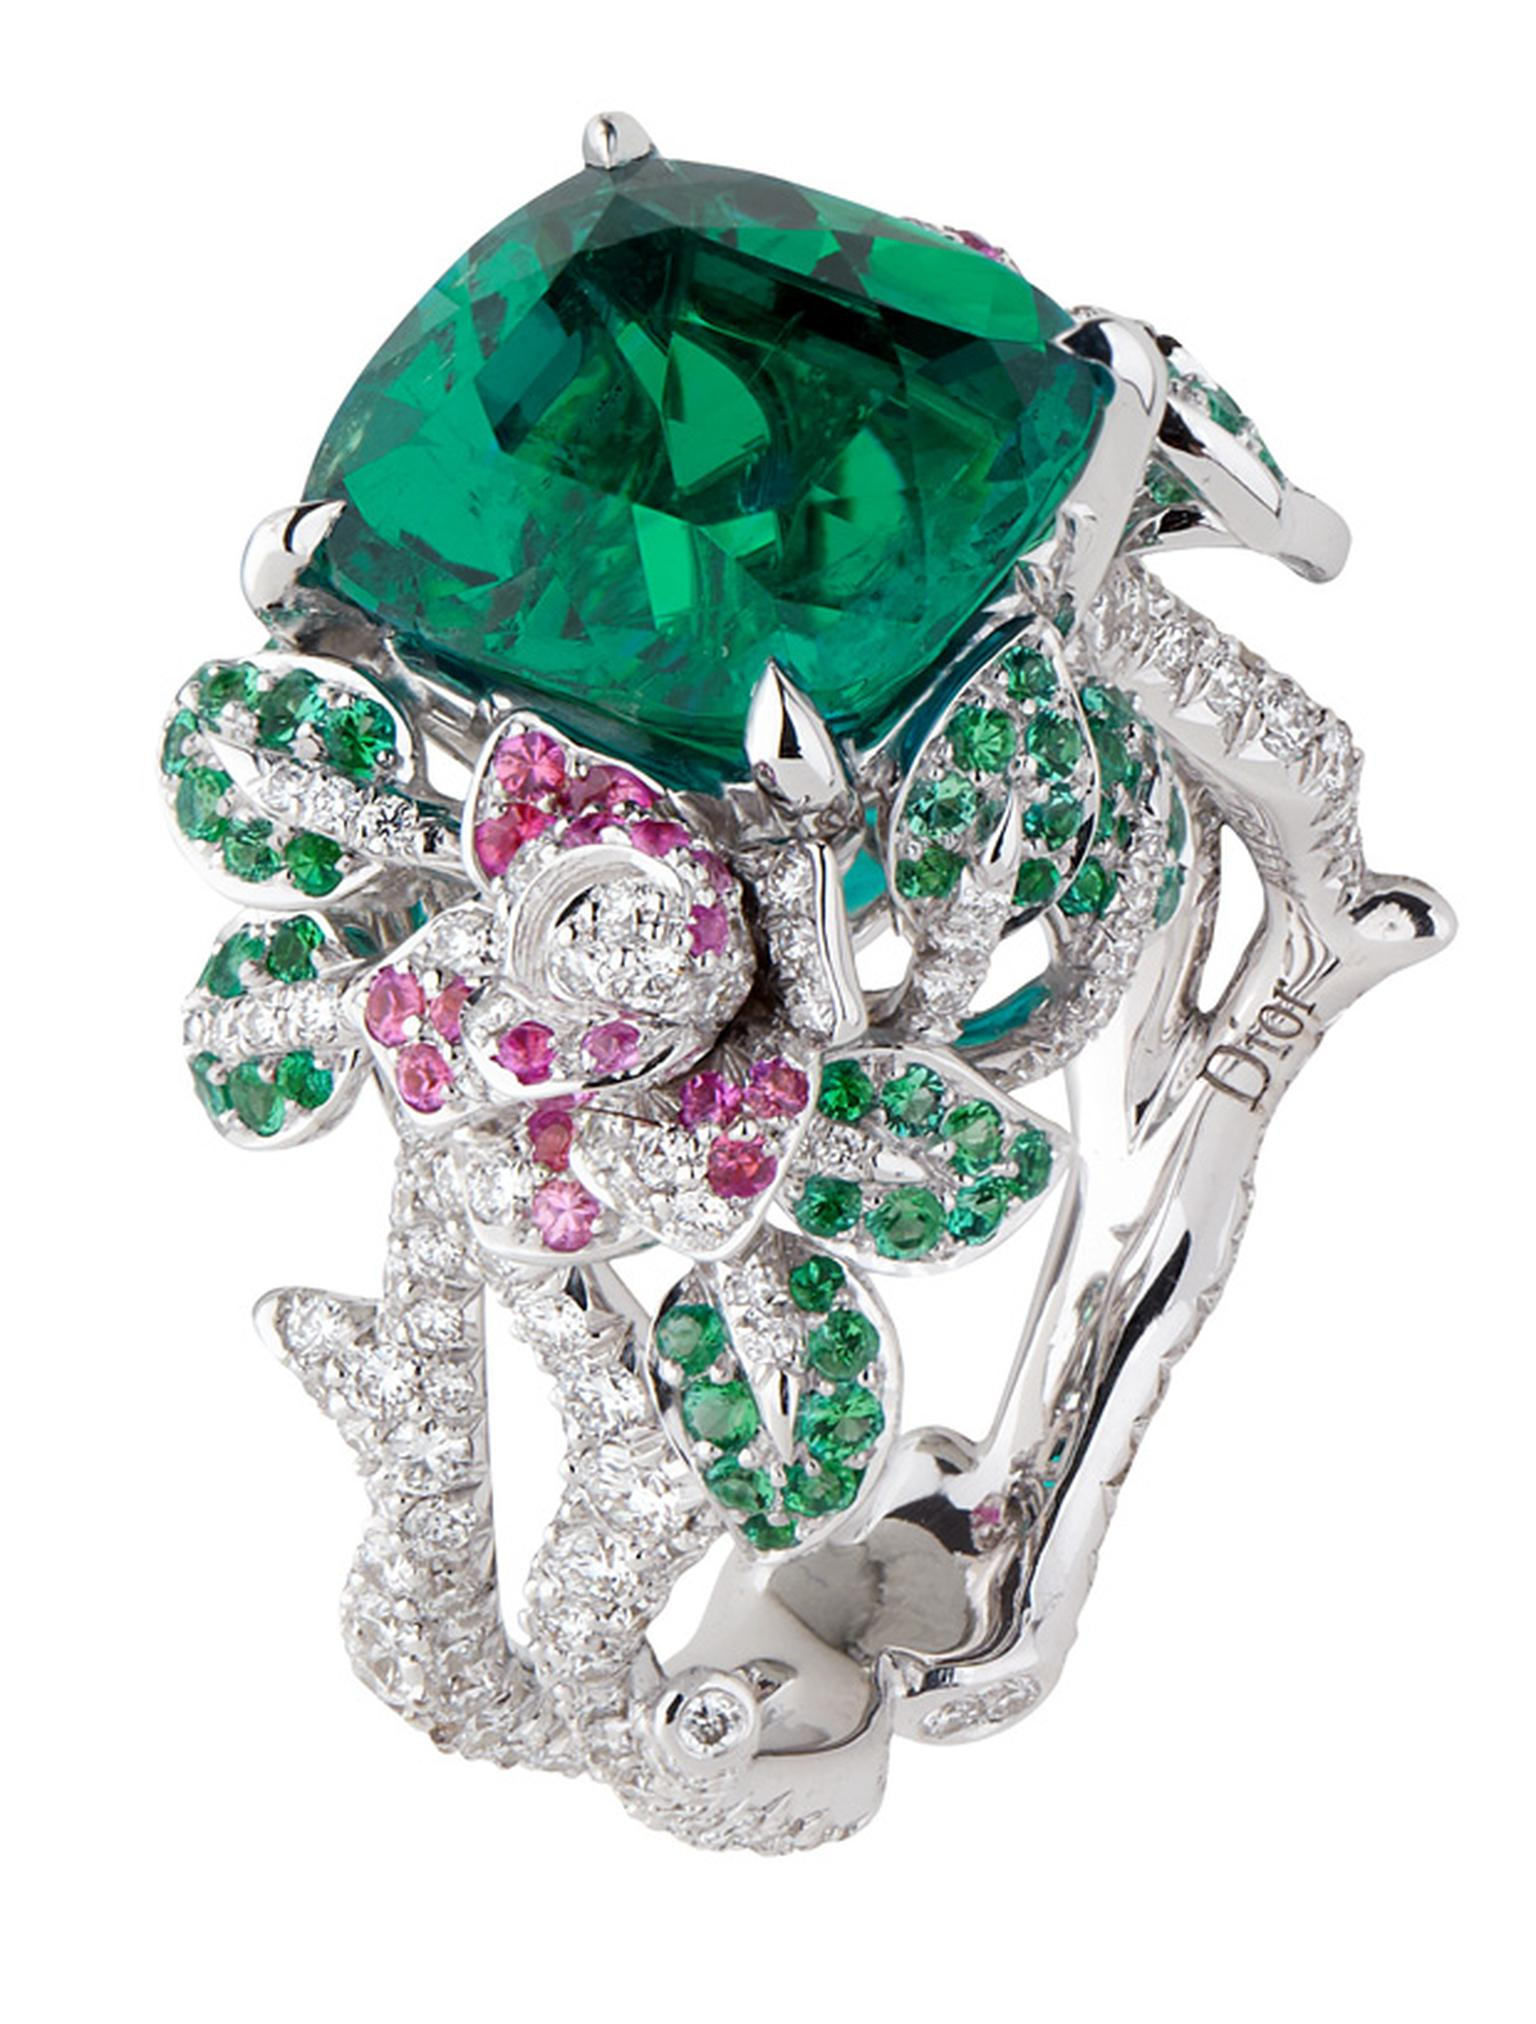 Dior Précieuse Rose ring with emeralds, diamonds and pink sapphires